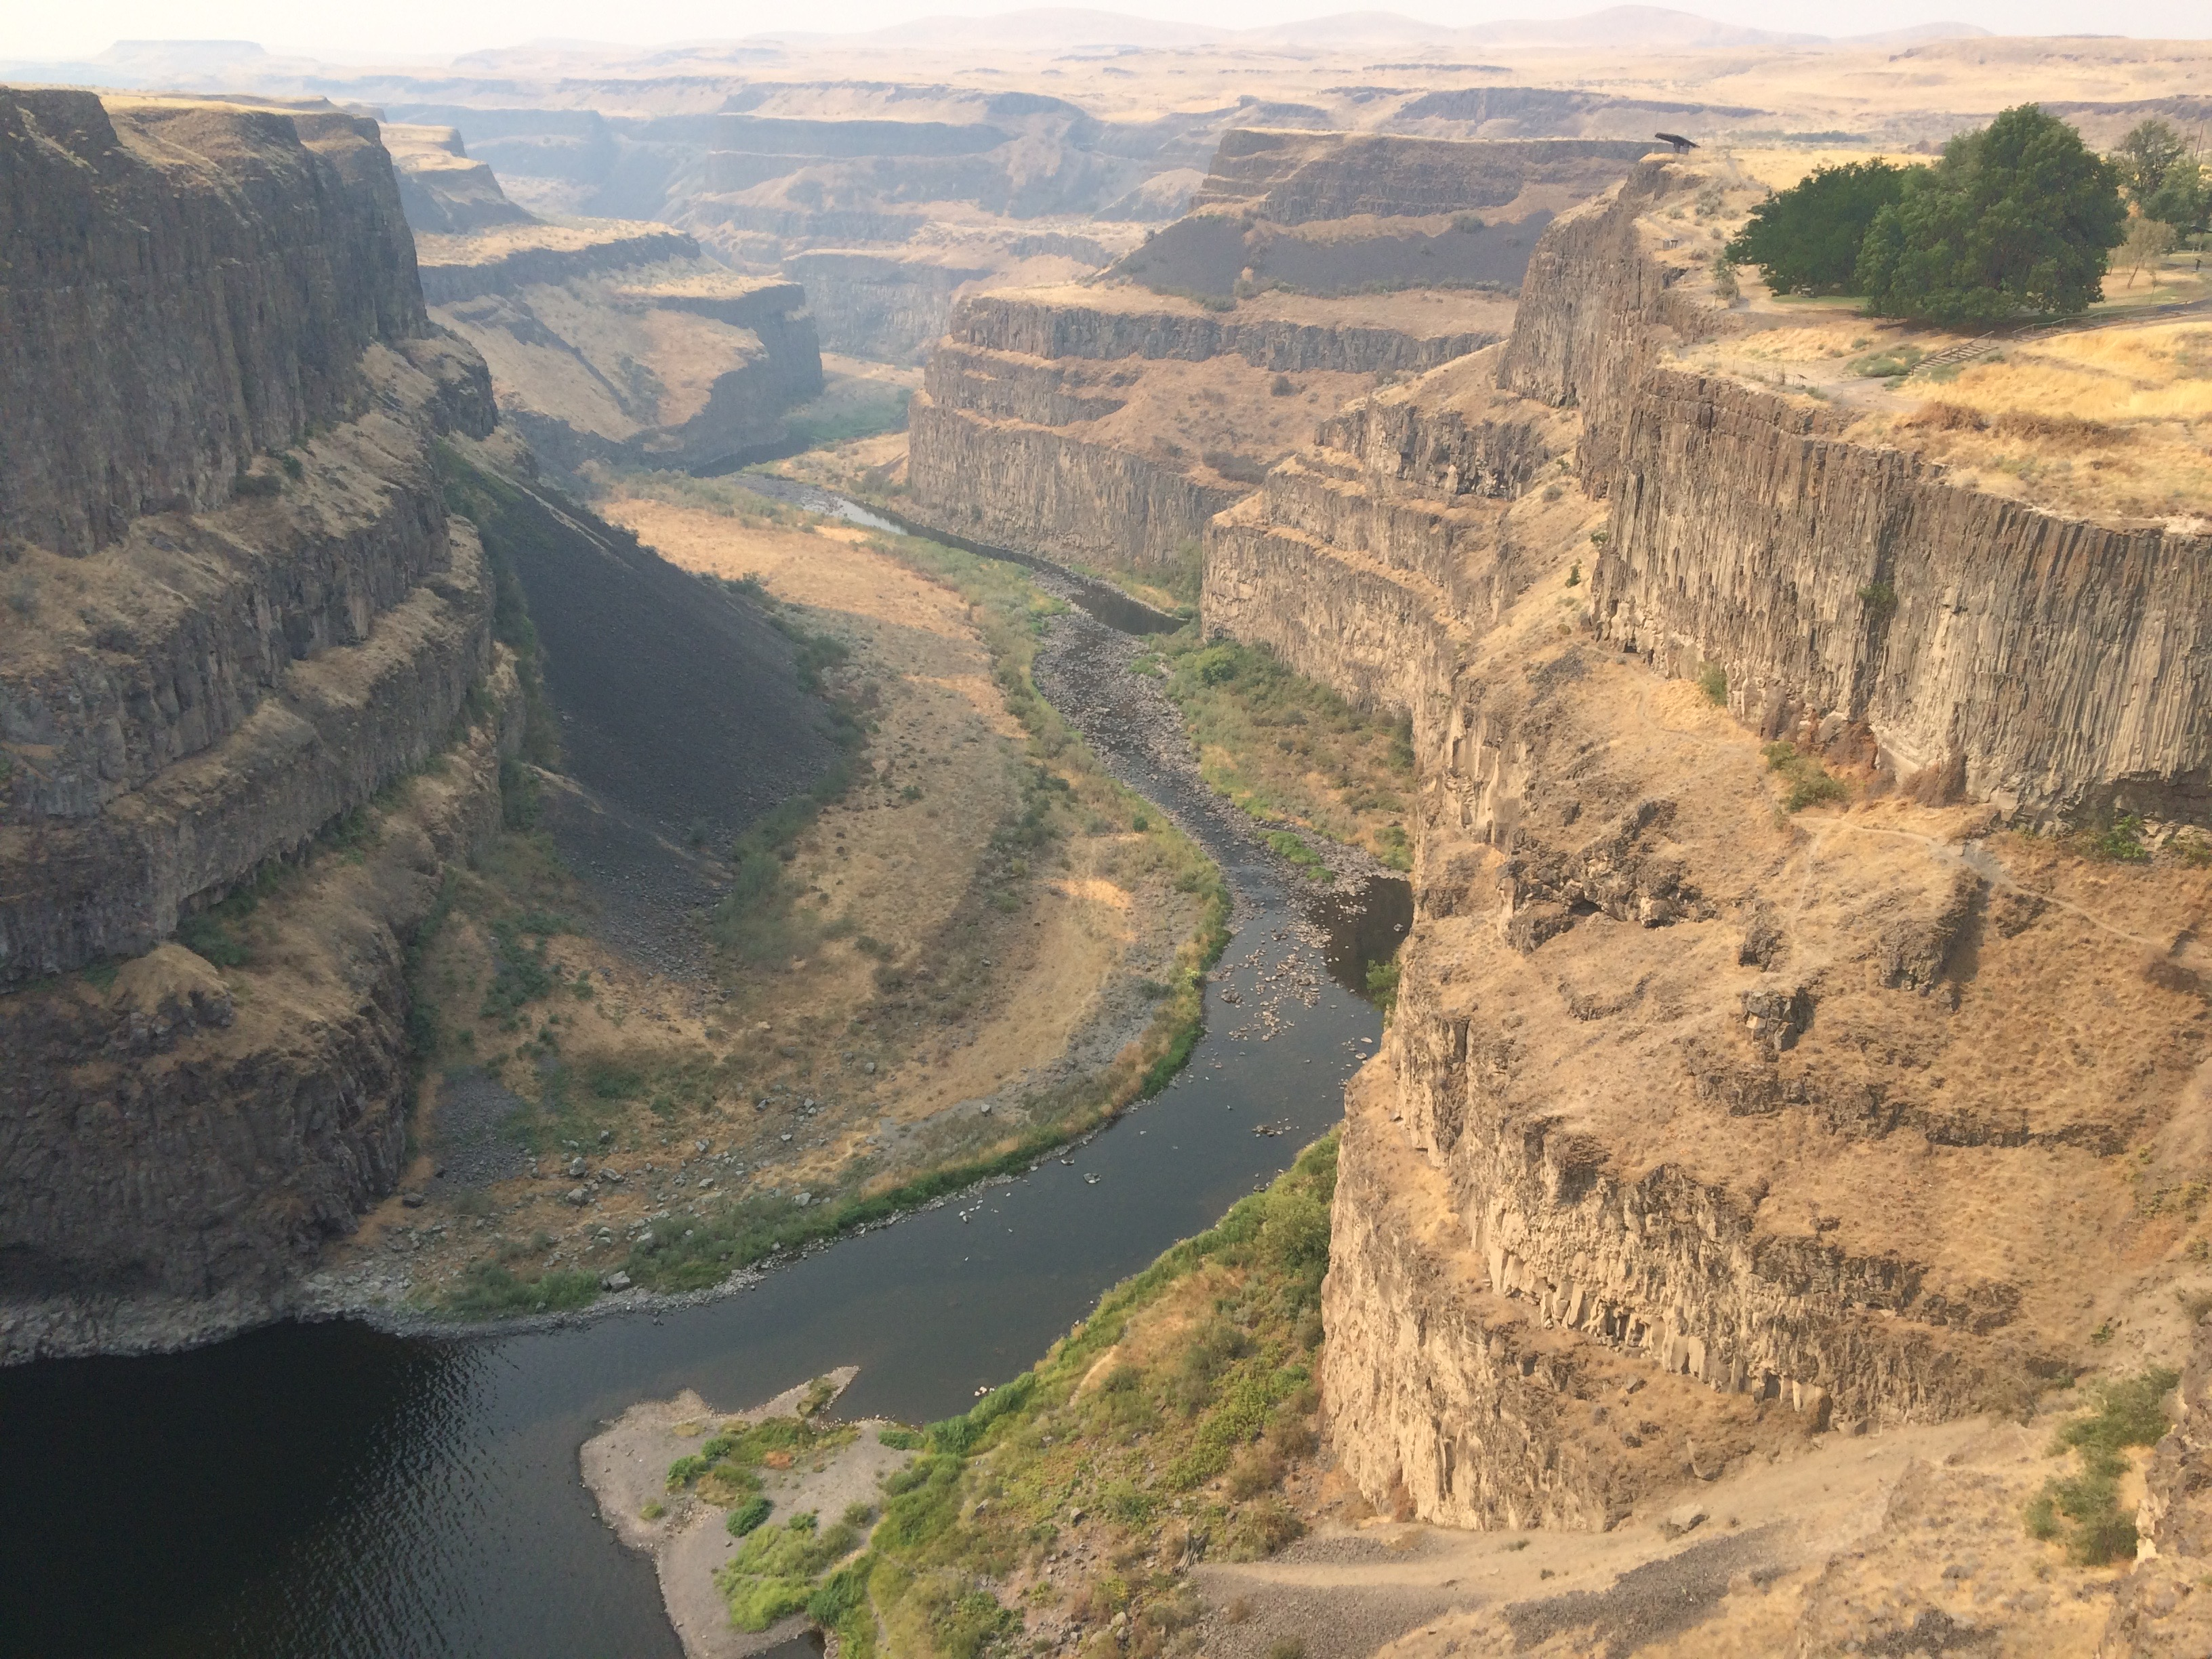 Photo looking down on the columbia river